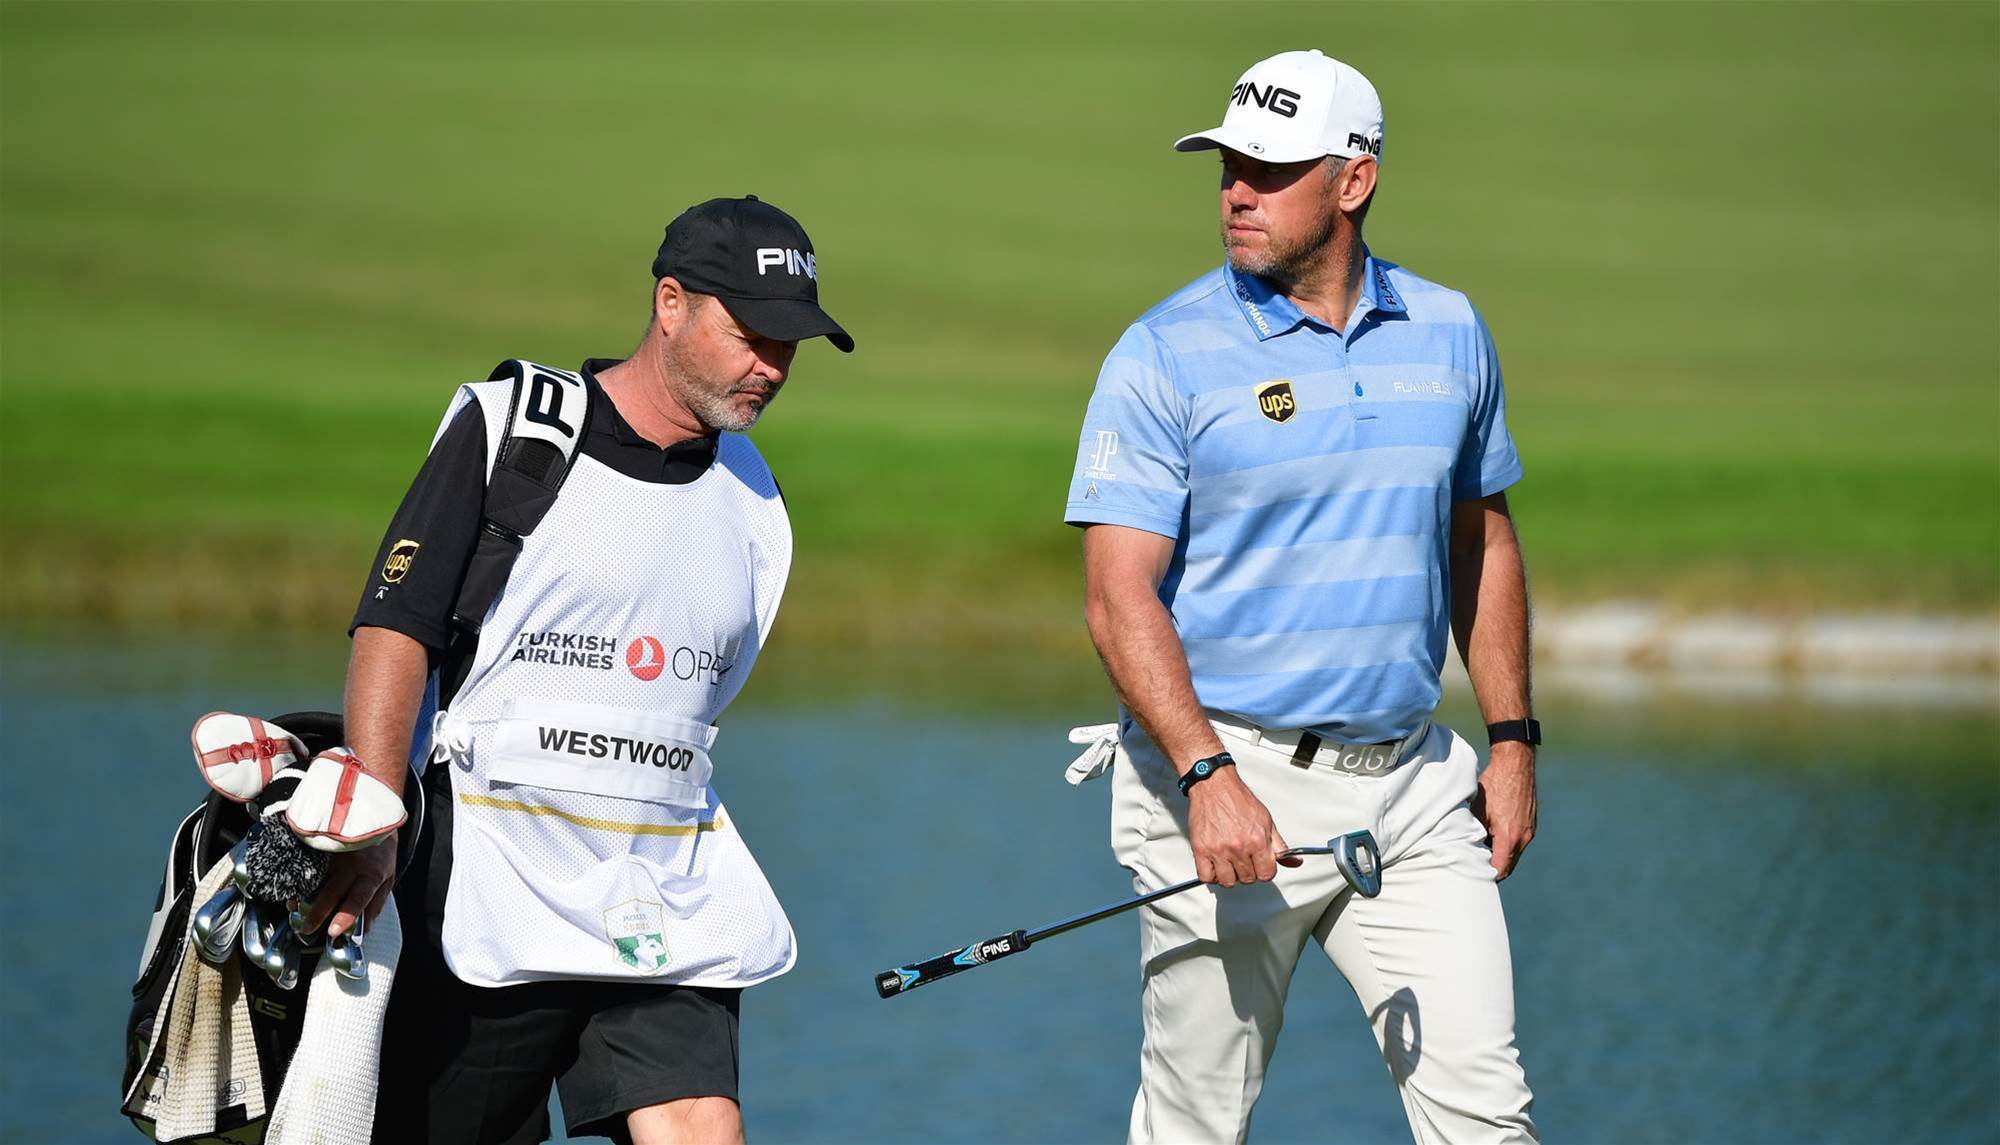 Westwood parts with caddie after 10 years